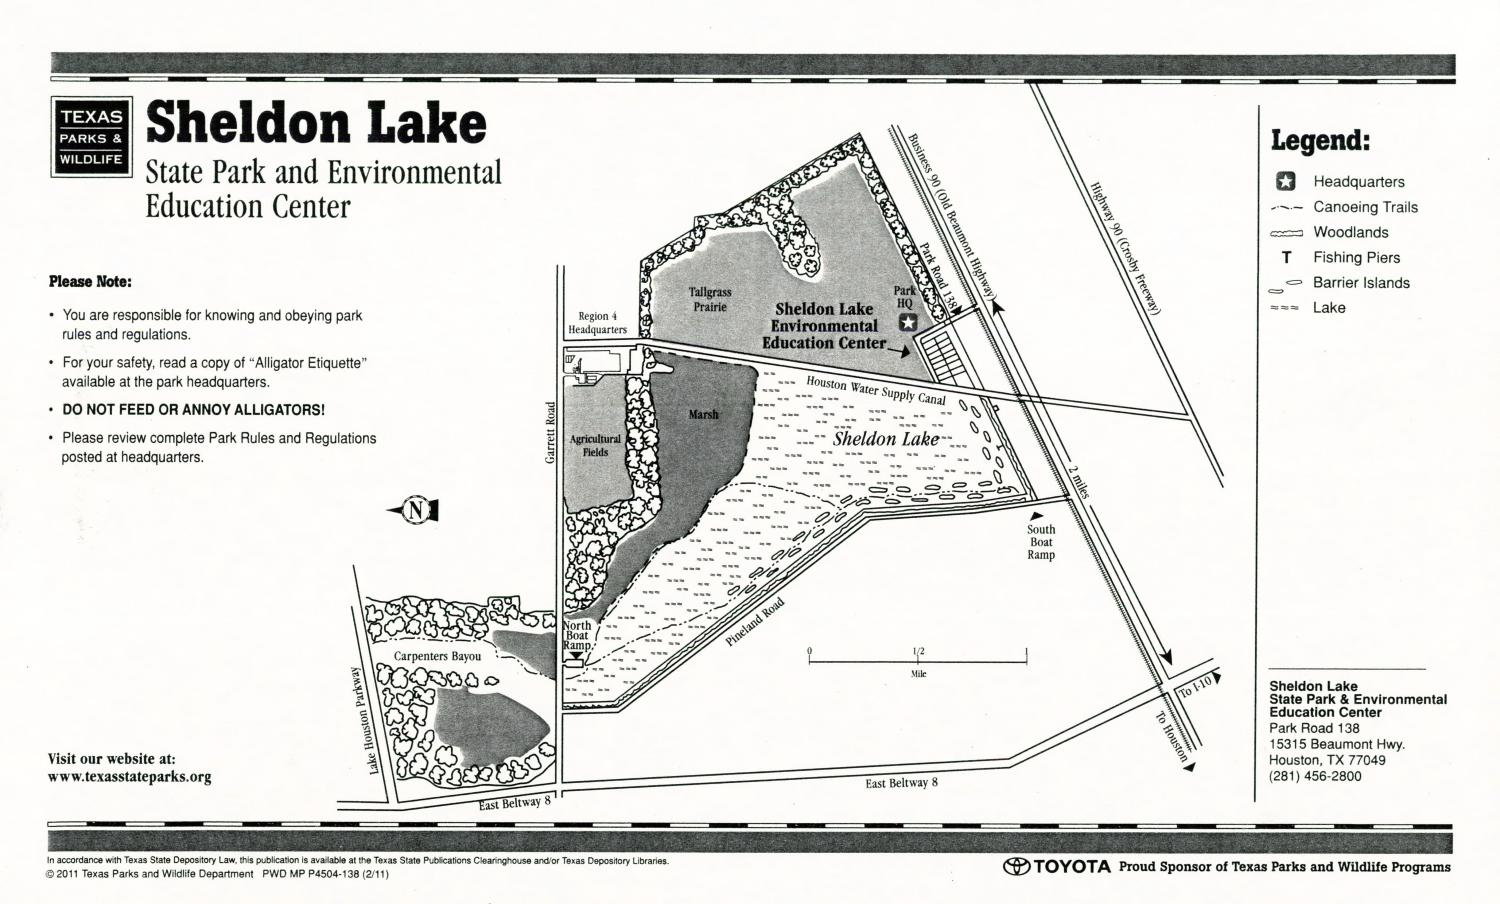 Sheldon Lake State Park and Environmental Education, Map of the Sheldon Lake State Park and Environmental Education outlining hiking trails and highlighting activities, facilities, and other features such as bathrooms, lodgings, water/electric, etc. It also contains general information for the park and for the Texas Parks and Wildlife Department. There are also various advertisements, including one for a State Parks Pass.,